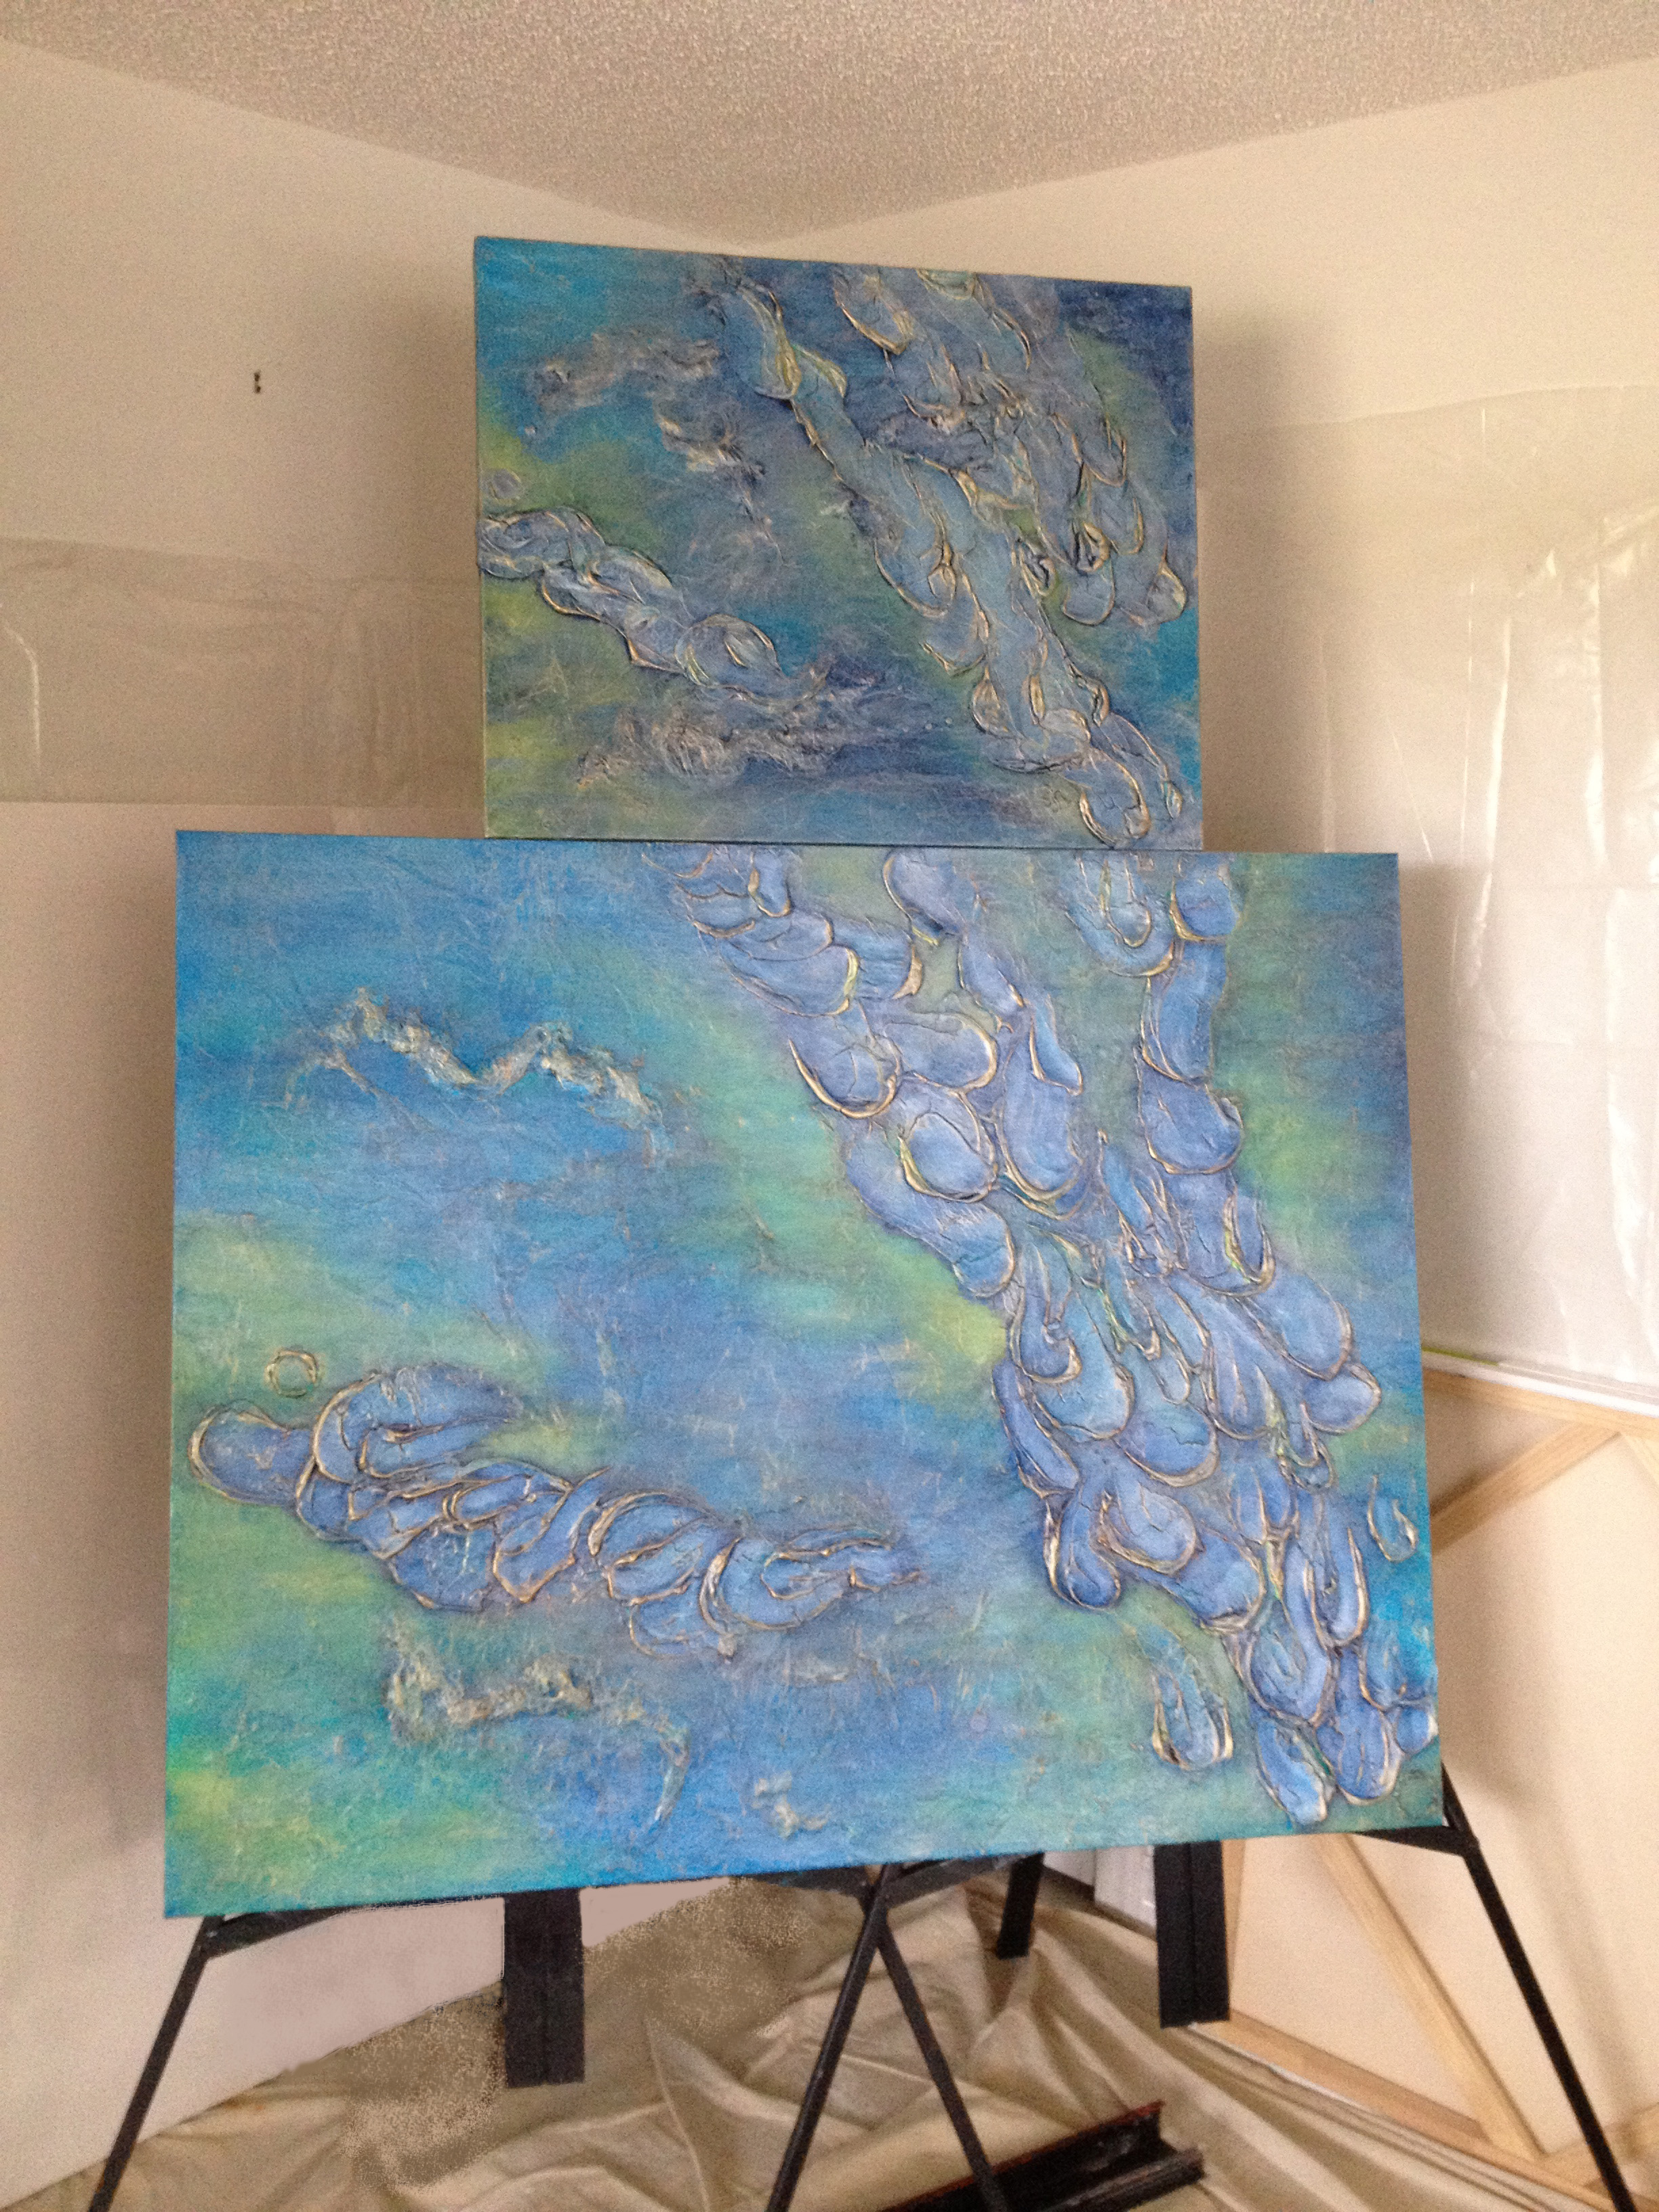 PEACEFUL WATERS original abstract on top and PEACEFUL WATERS II commissioned painting on bottom.